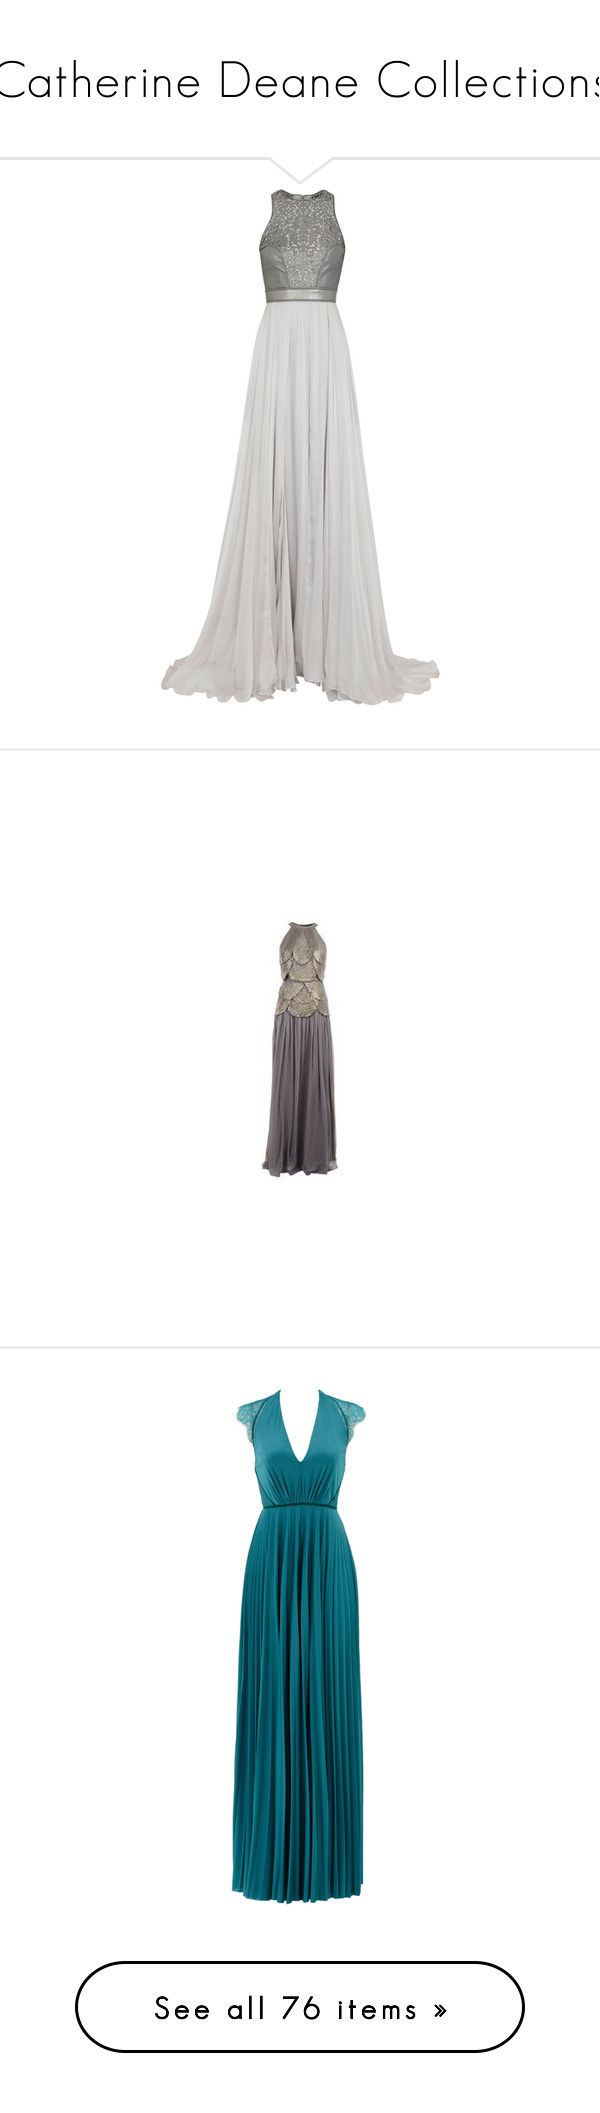 """Catherine Deane Collections"" by tiffanyelinor ❤ liked on Polyvore featuring dresses, gowns, vestidos, long dresses, silk dress, gray dress, gray gown, sheer dress, grey evening dresses and maxi dresses"